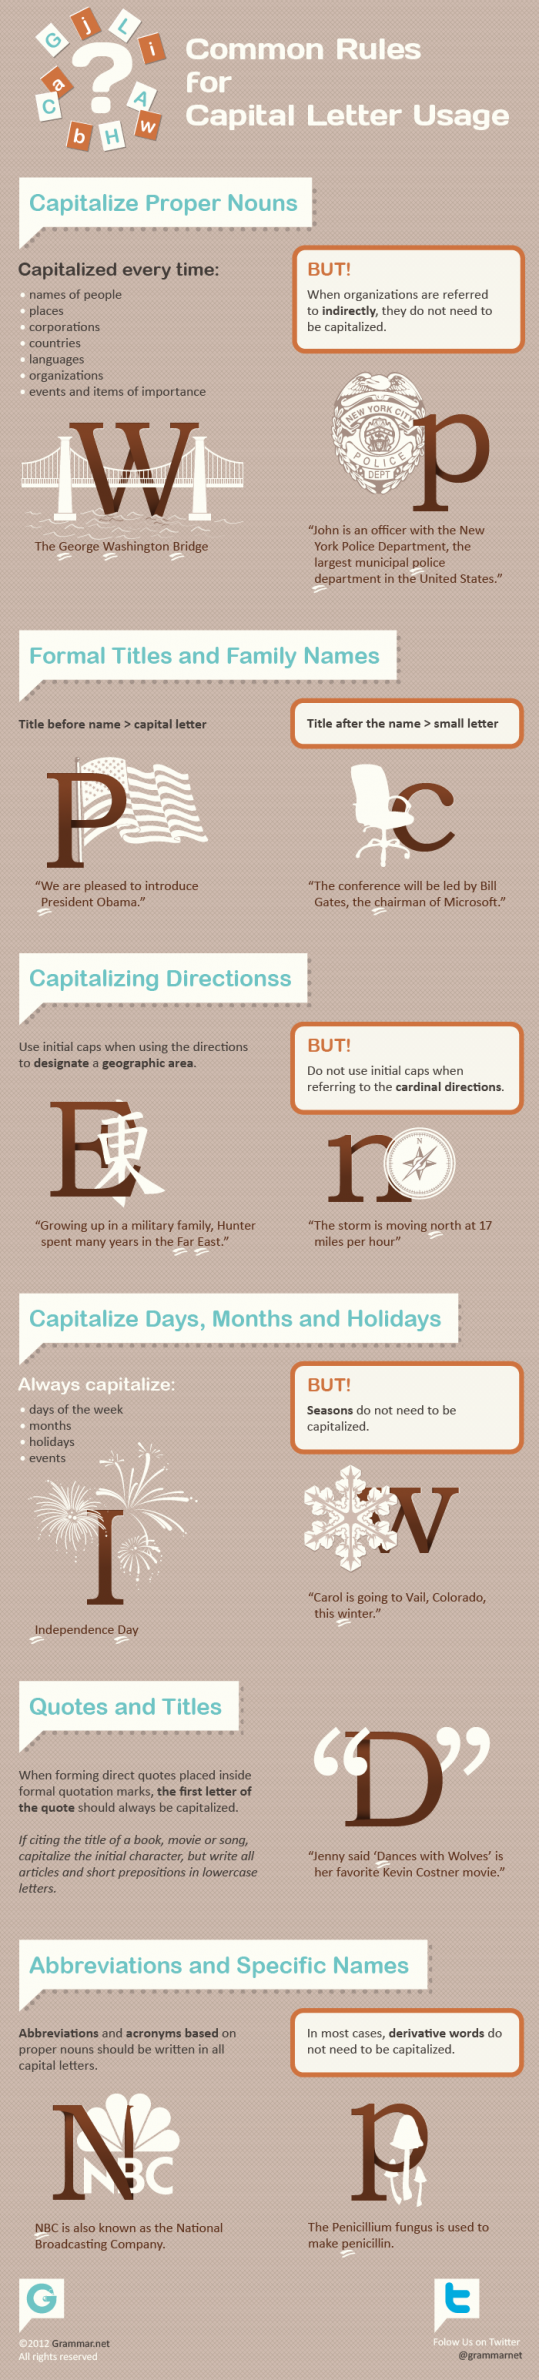 Common Rules for Capital Letter Usage